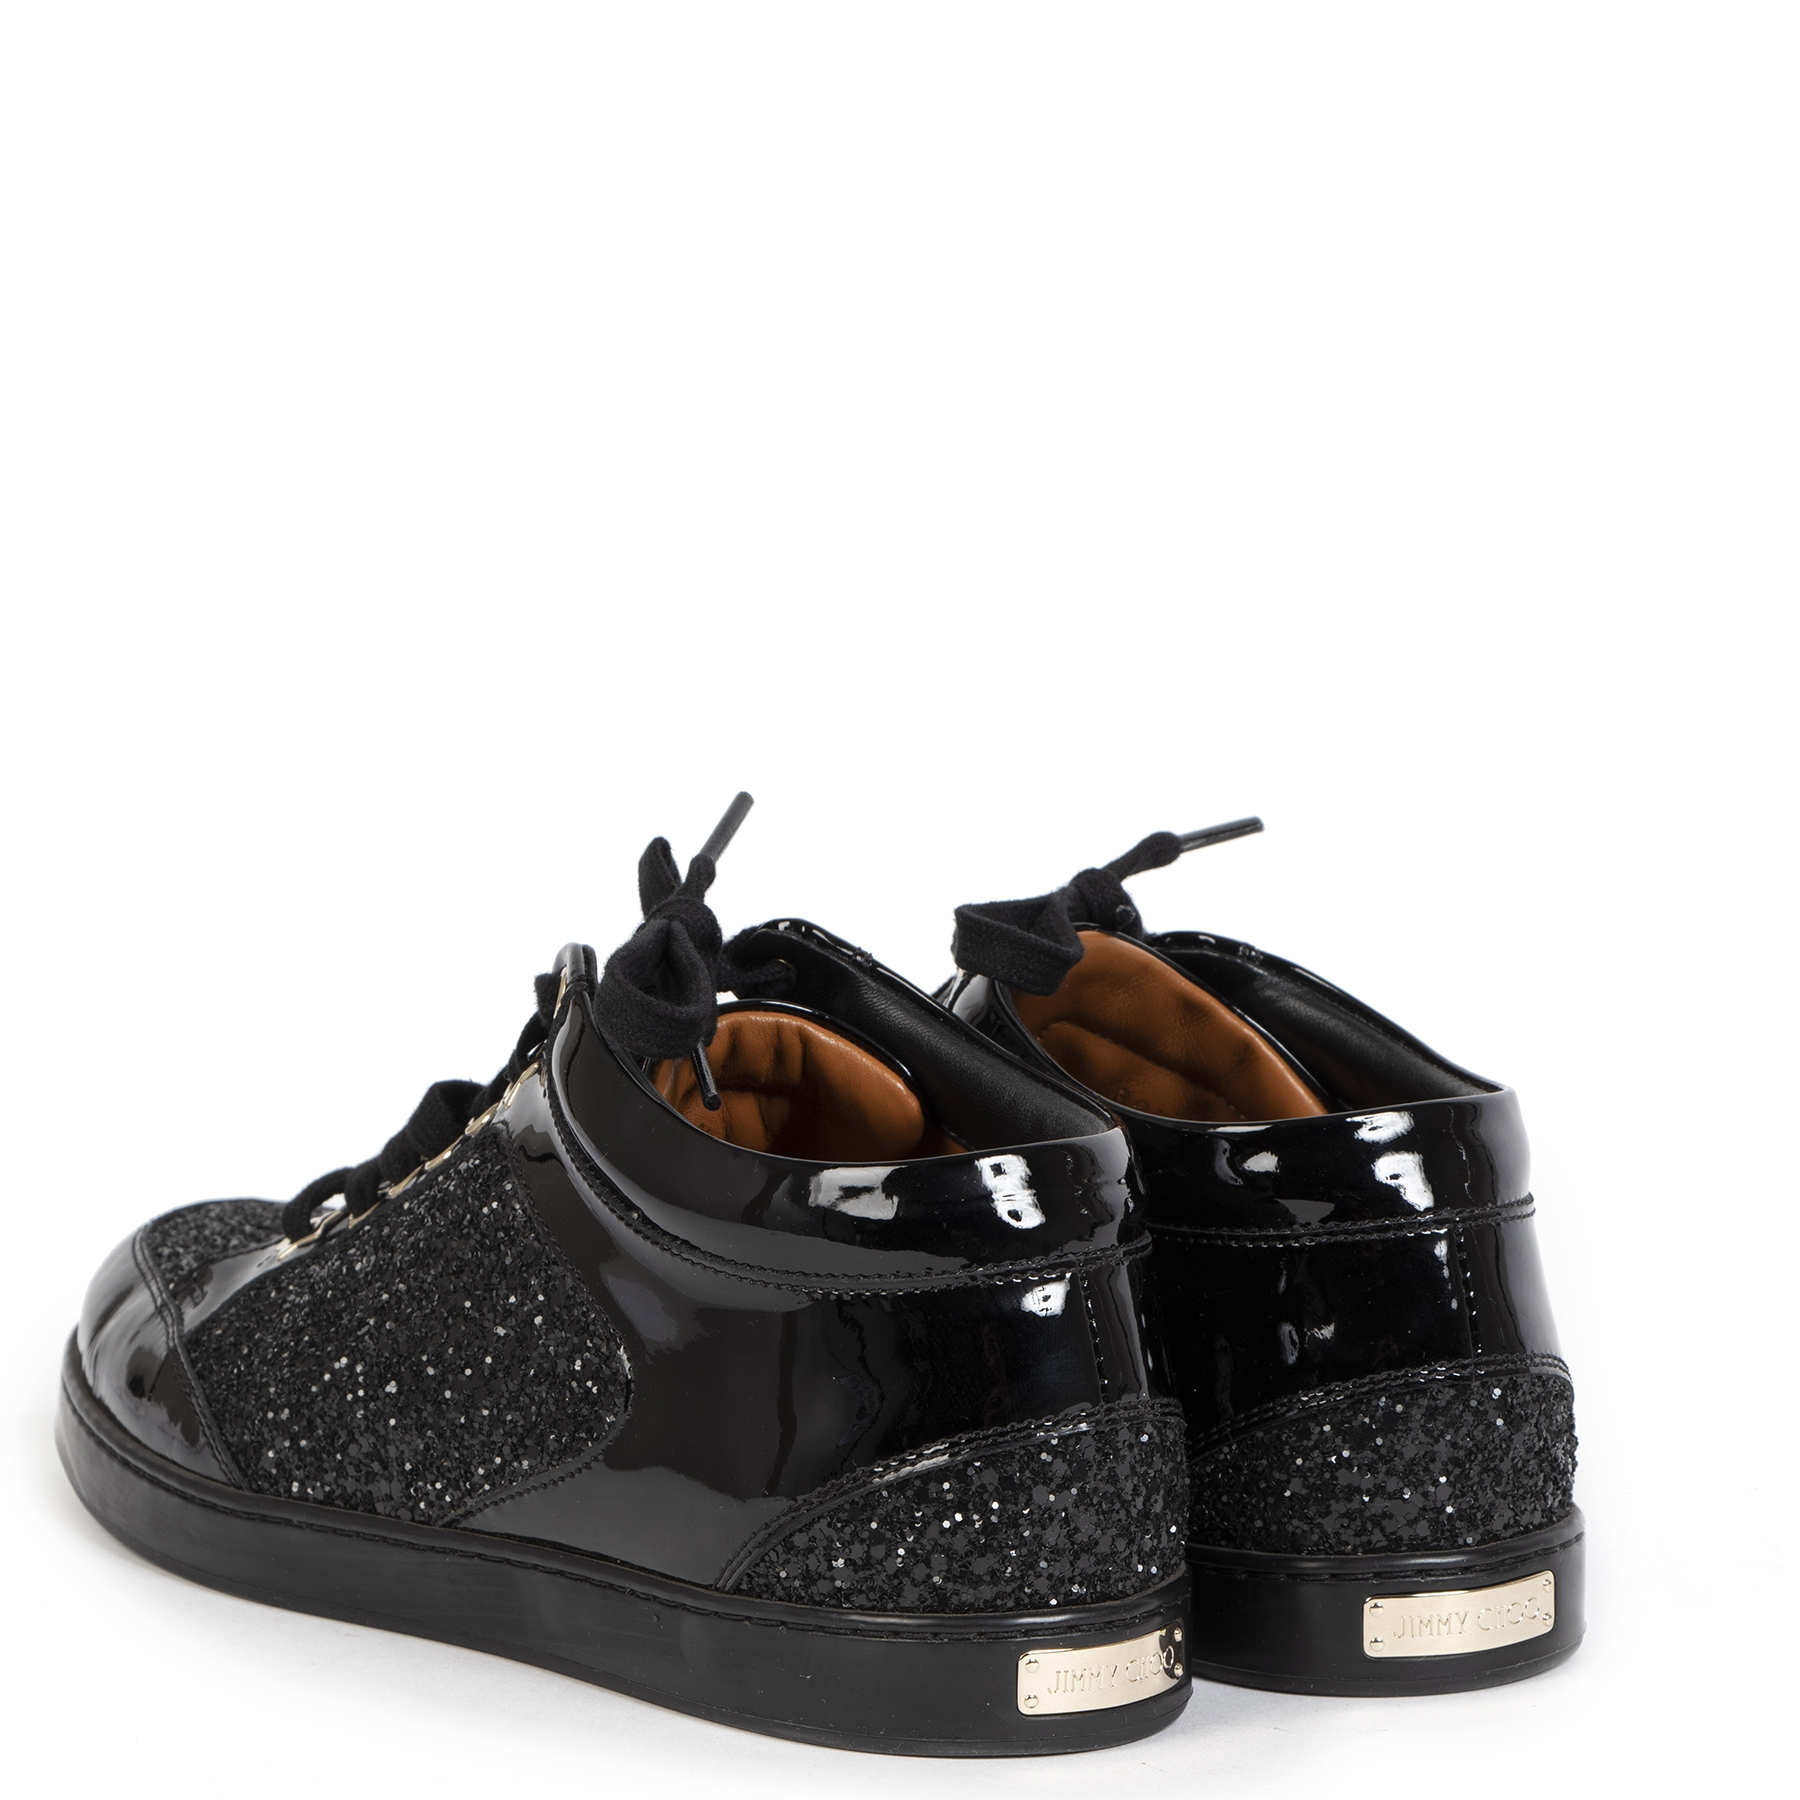 Authentieke tweedehands vintage Jimmy Choo Miami Patent Leather Glitter Sneakers koop online webshop LabelLOV